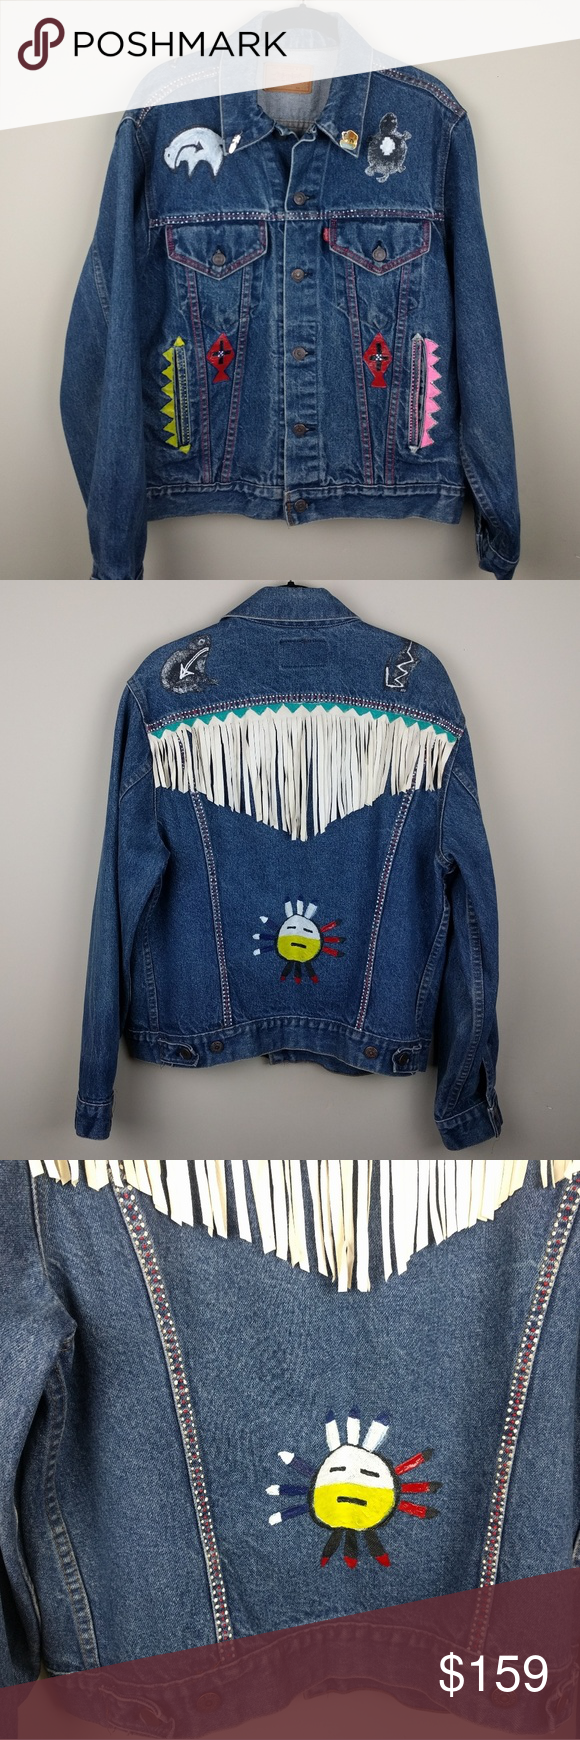 Levi Strauss Jacket Native American Hand Painted Clothes Design Levi Fashion [ 1740 x 580 Pixel ]